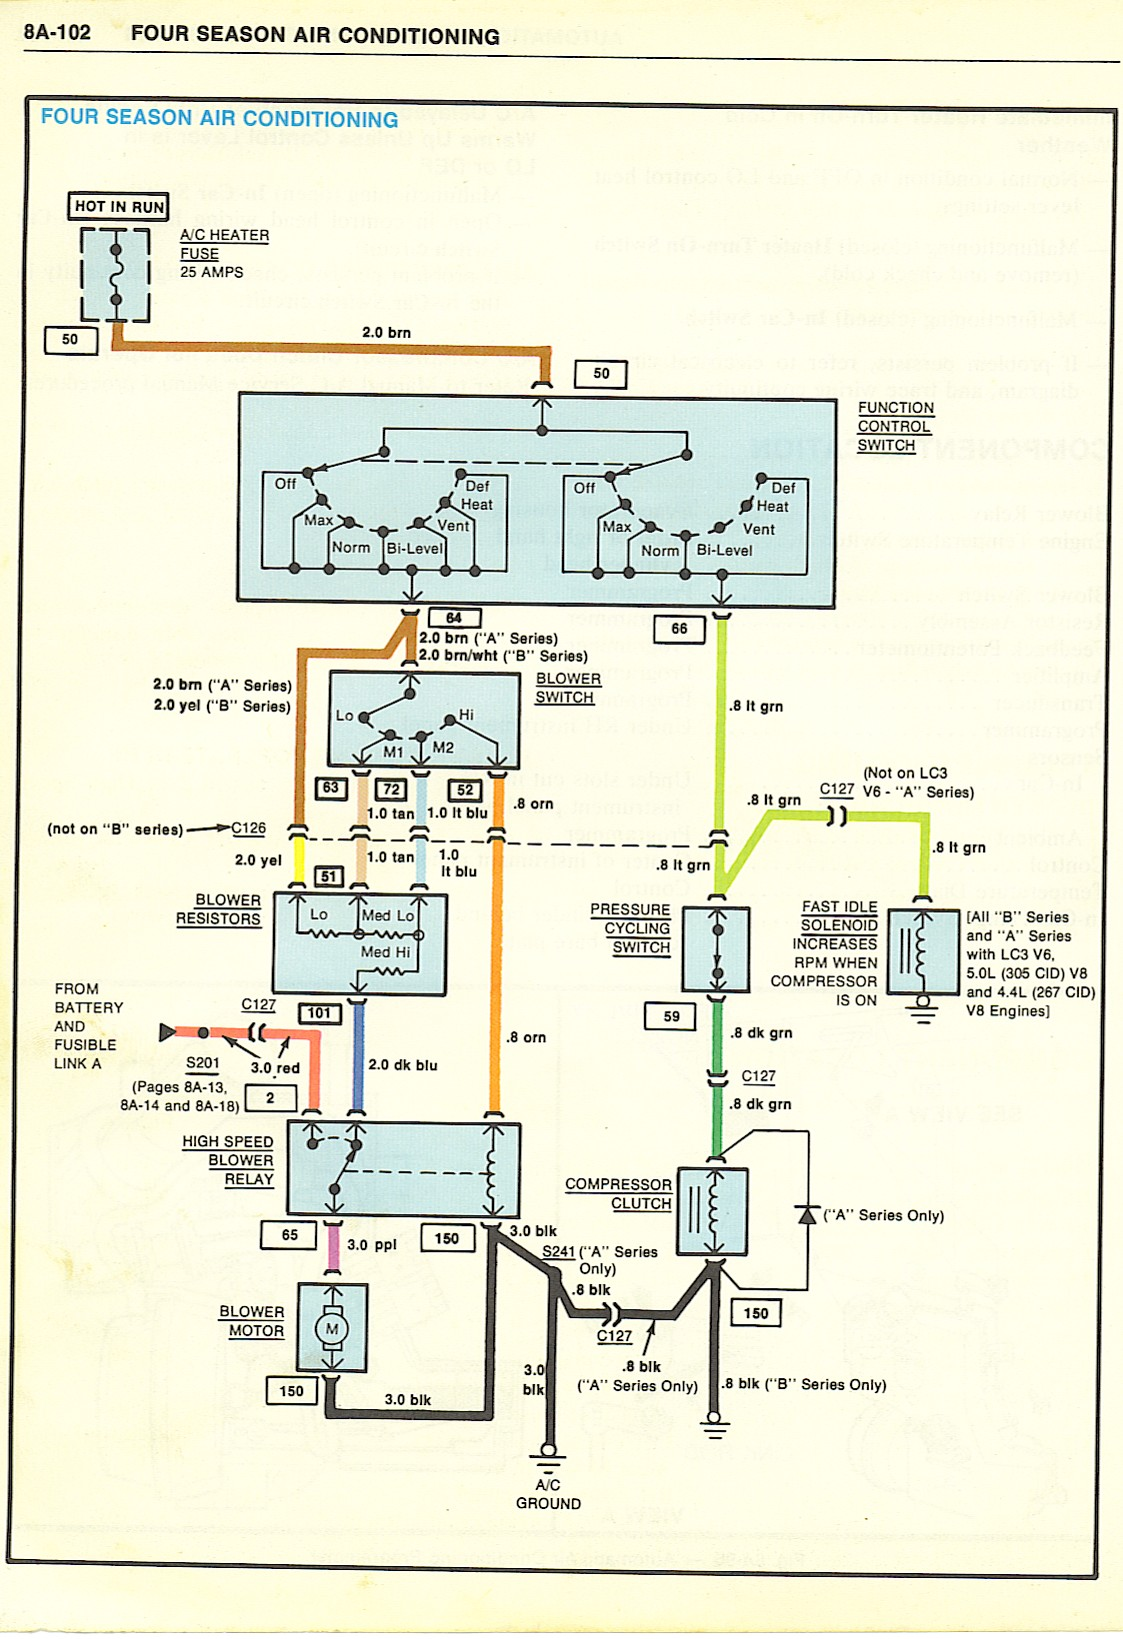 kenworth ac wiring diagram 2004 kenworth t800 ac wiring diagram rh color castles com kenworth ac diagram kenworth t800 ac wiring diagram